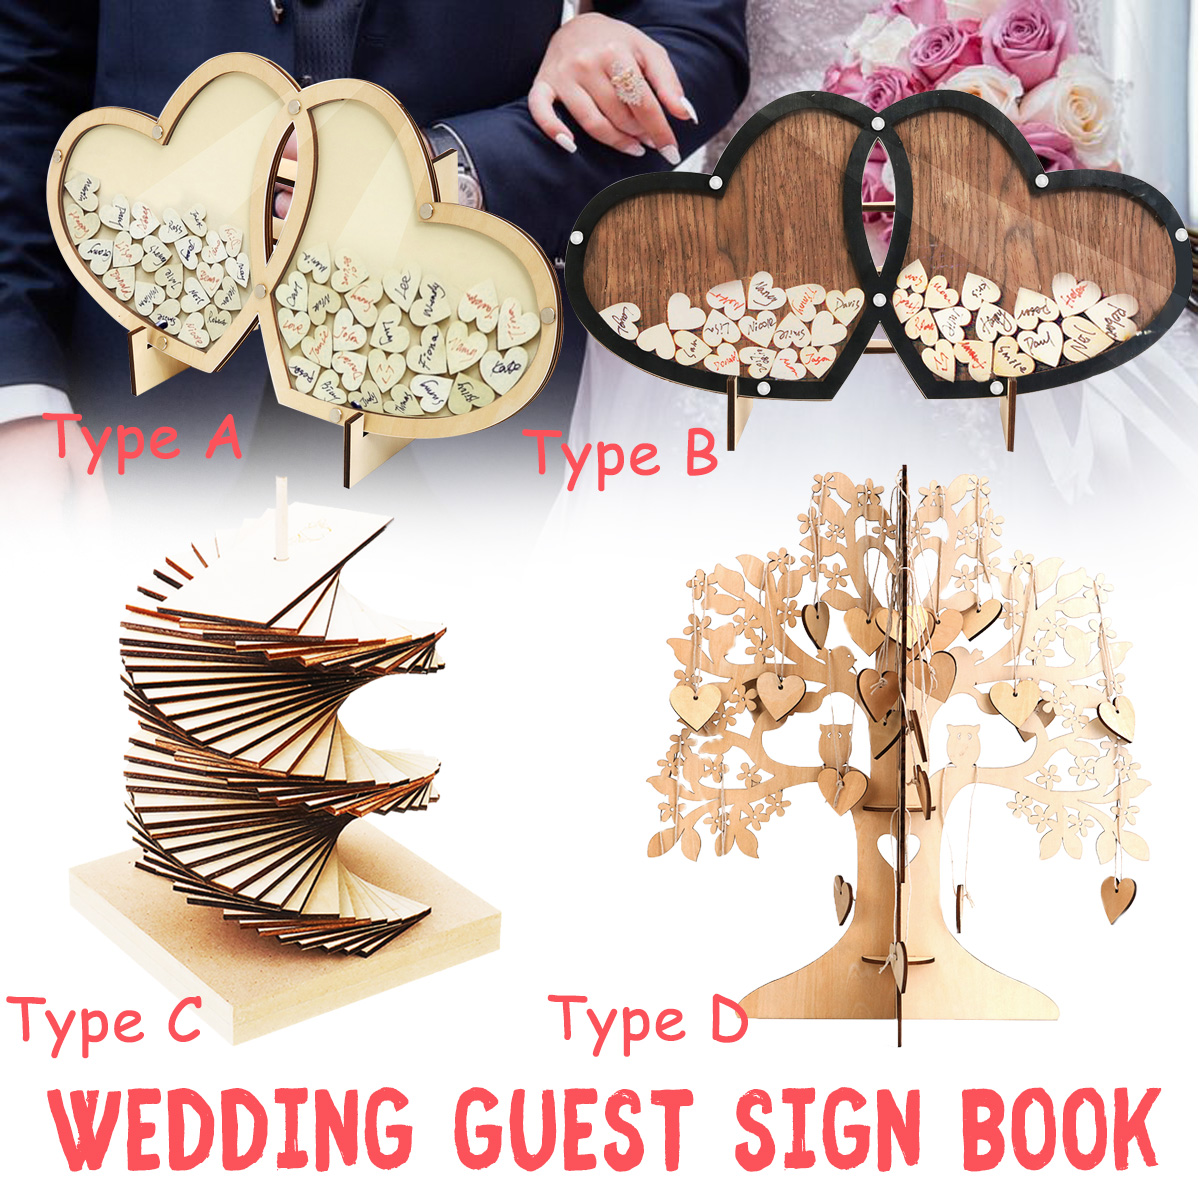 fb27fcade Wedding Guest Book Personalized Tree Visit Signature Sign Book Wooden  Hearts Rustic Ornaments for Wedding Party Decor Supplies